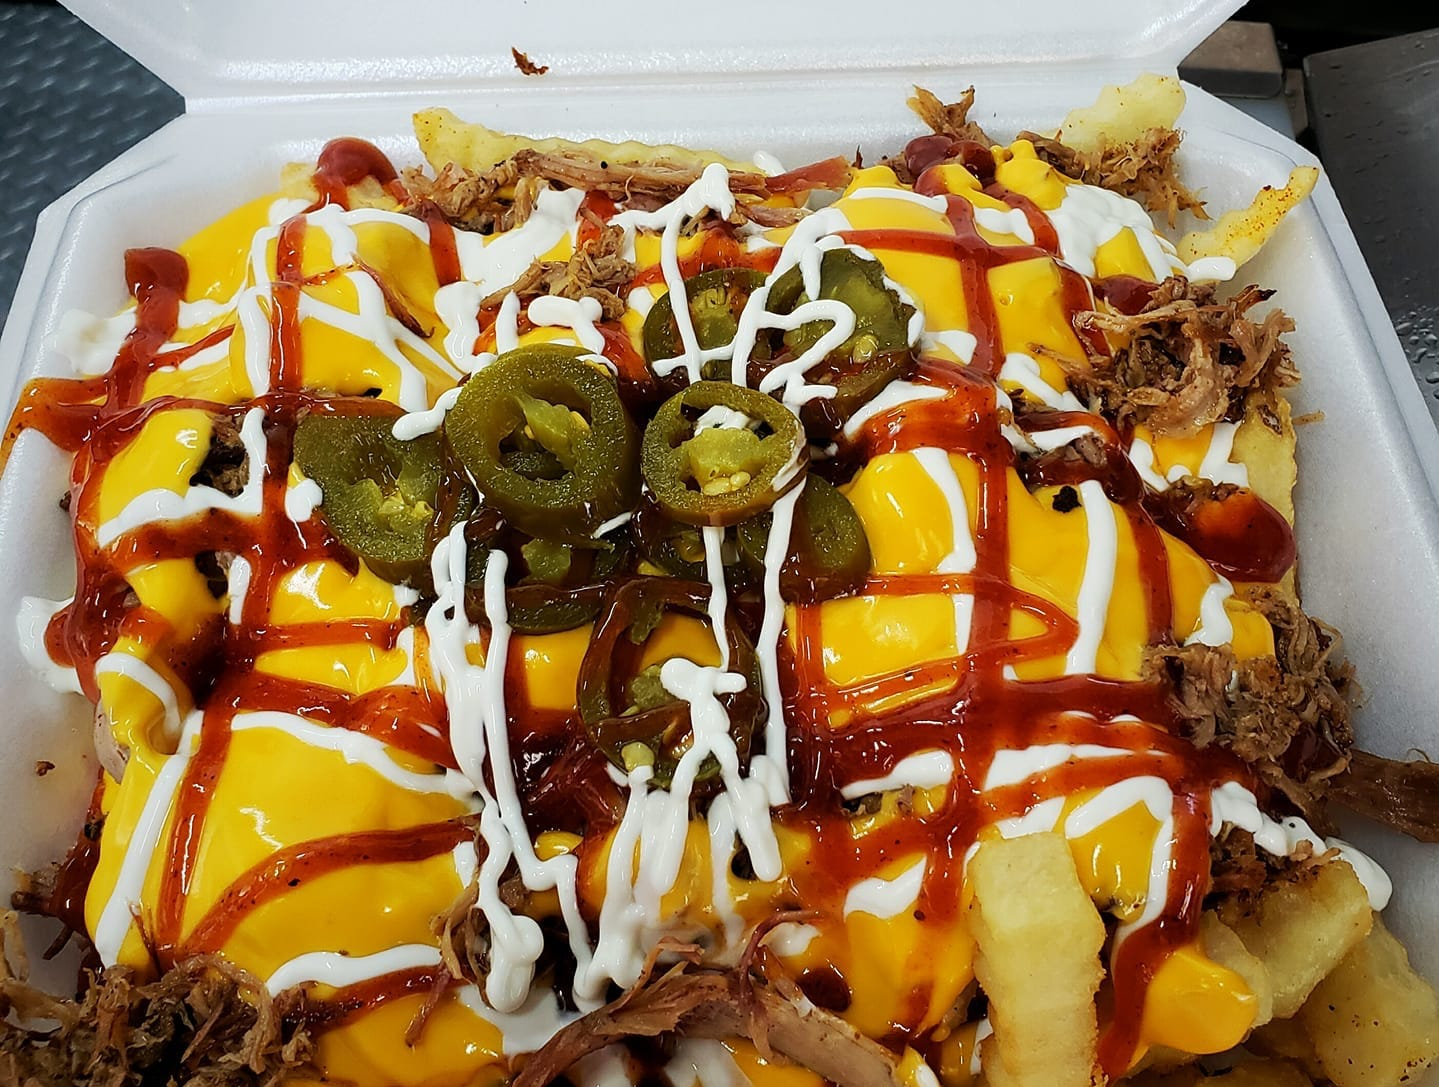 The loaded fries at Gray Smoke Barbecue.